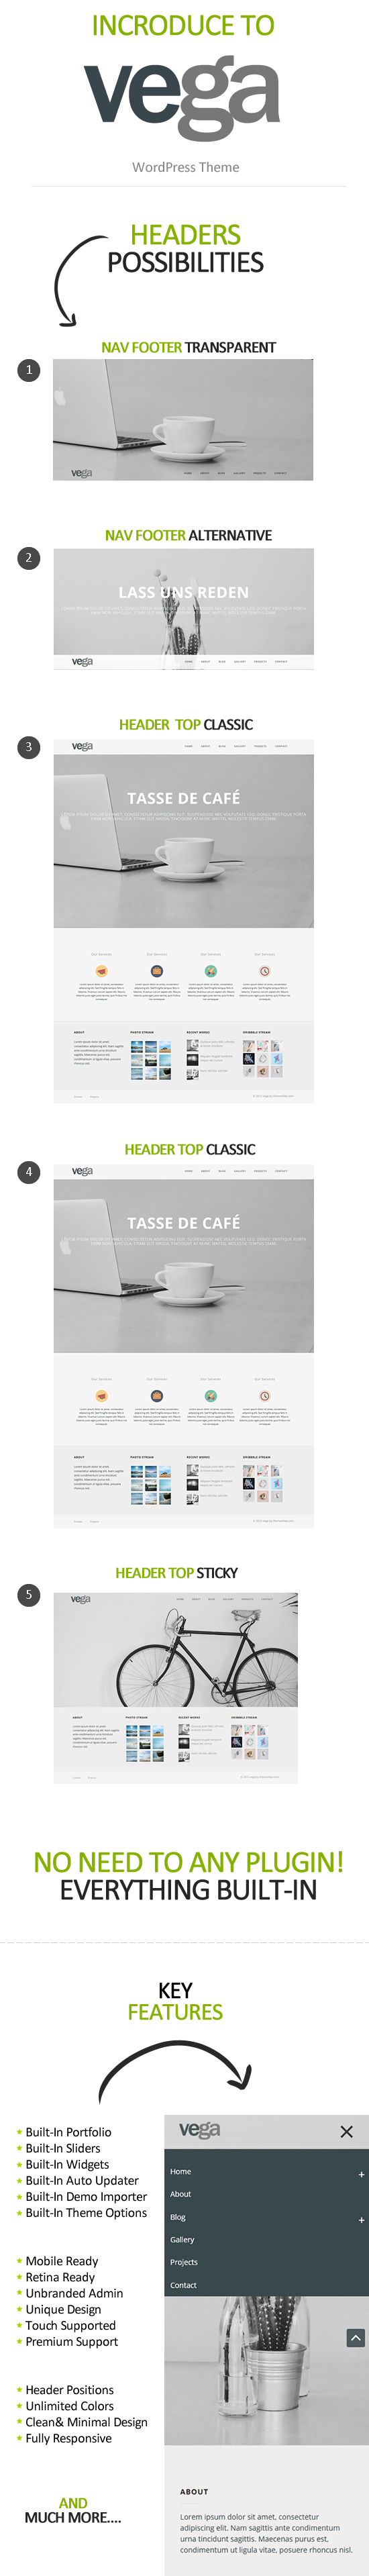 vega_wordpress_theme_info